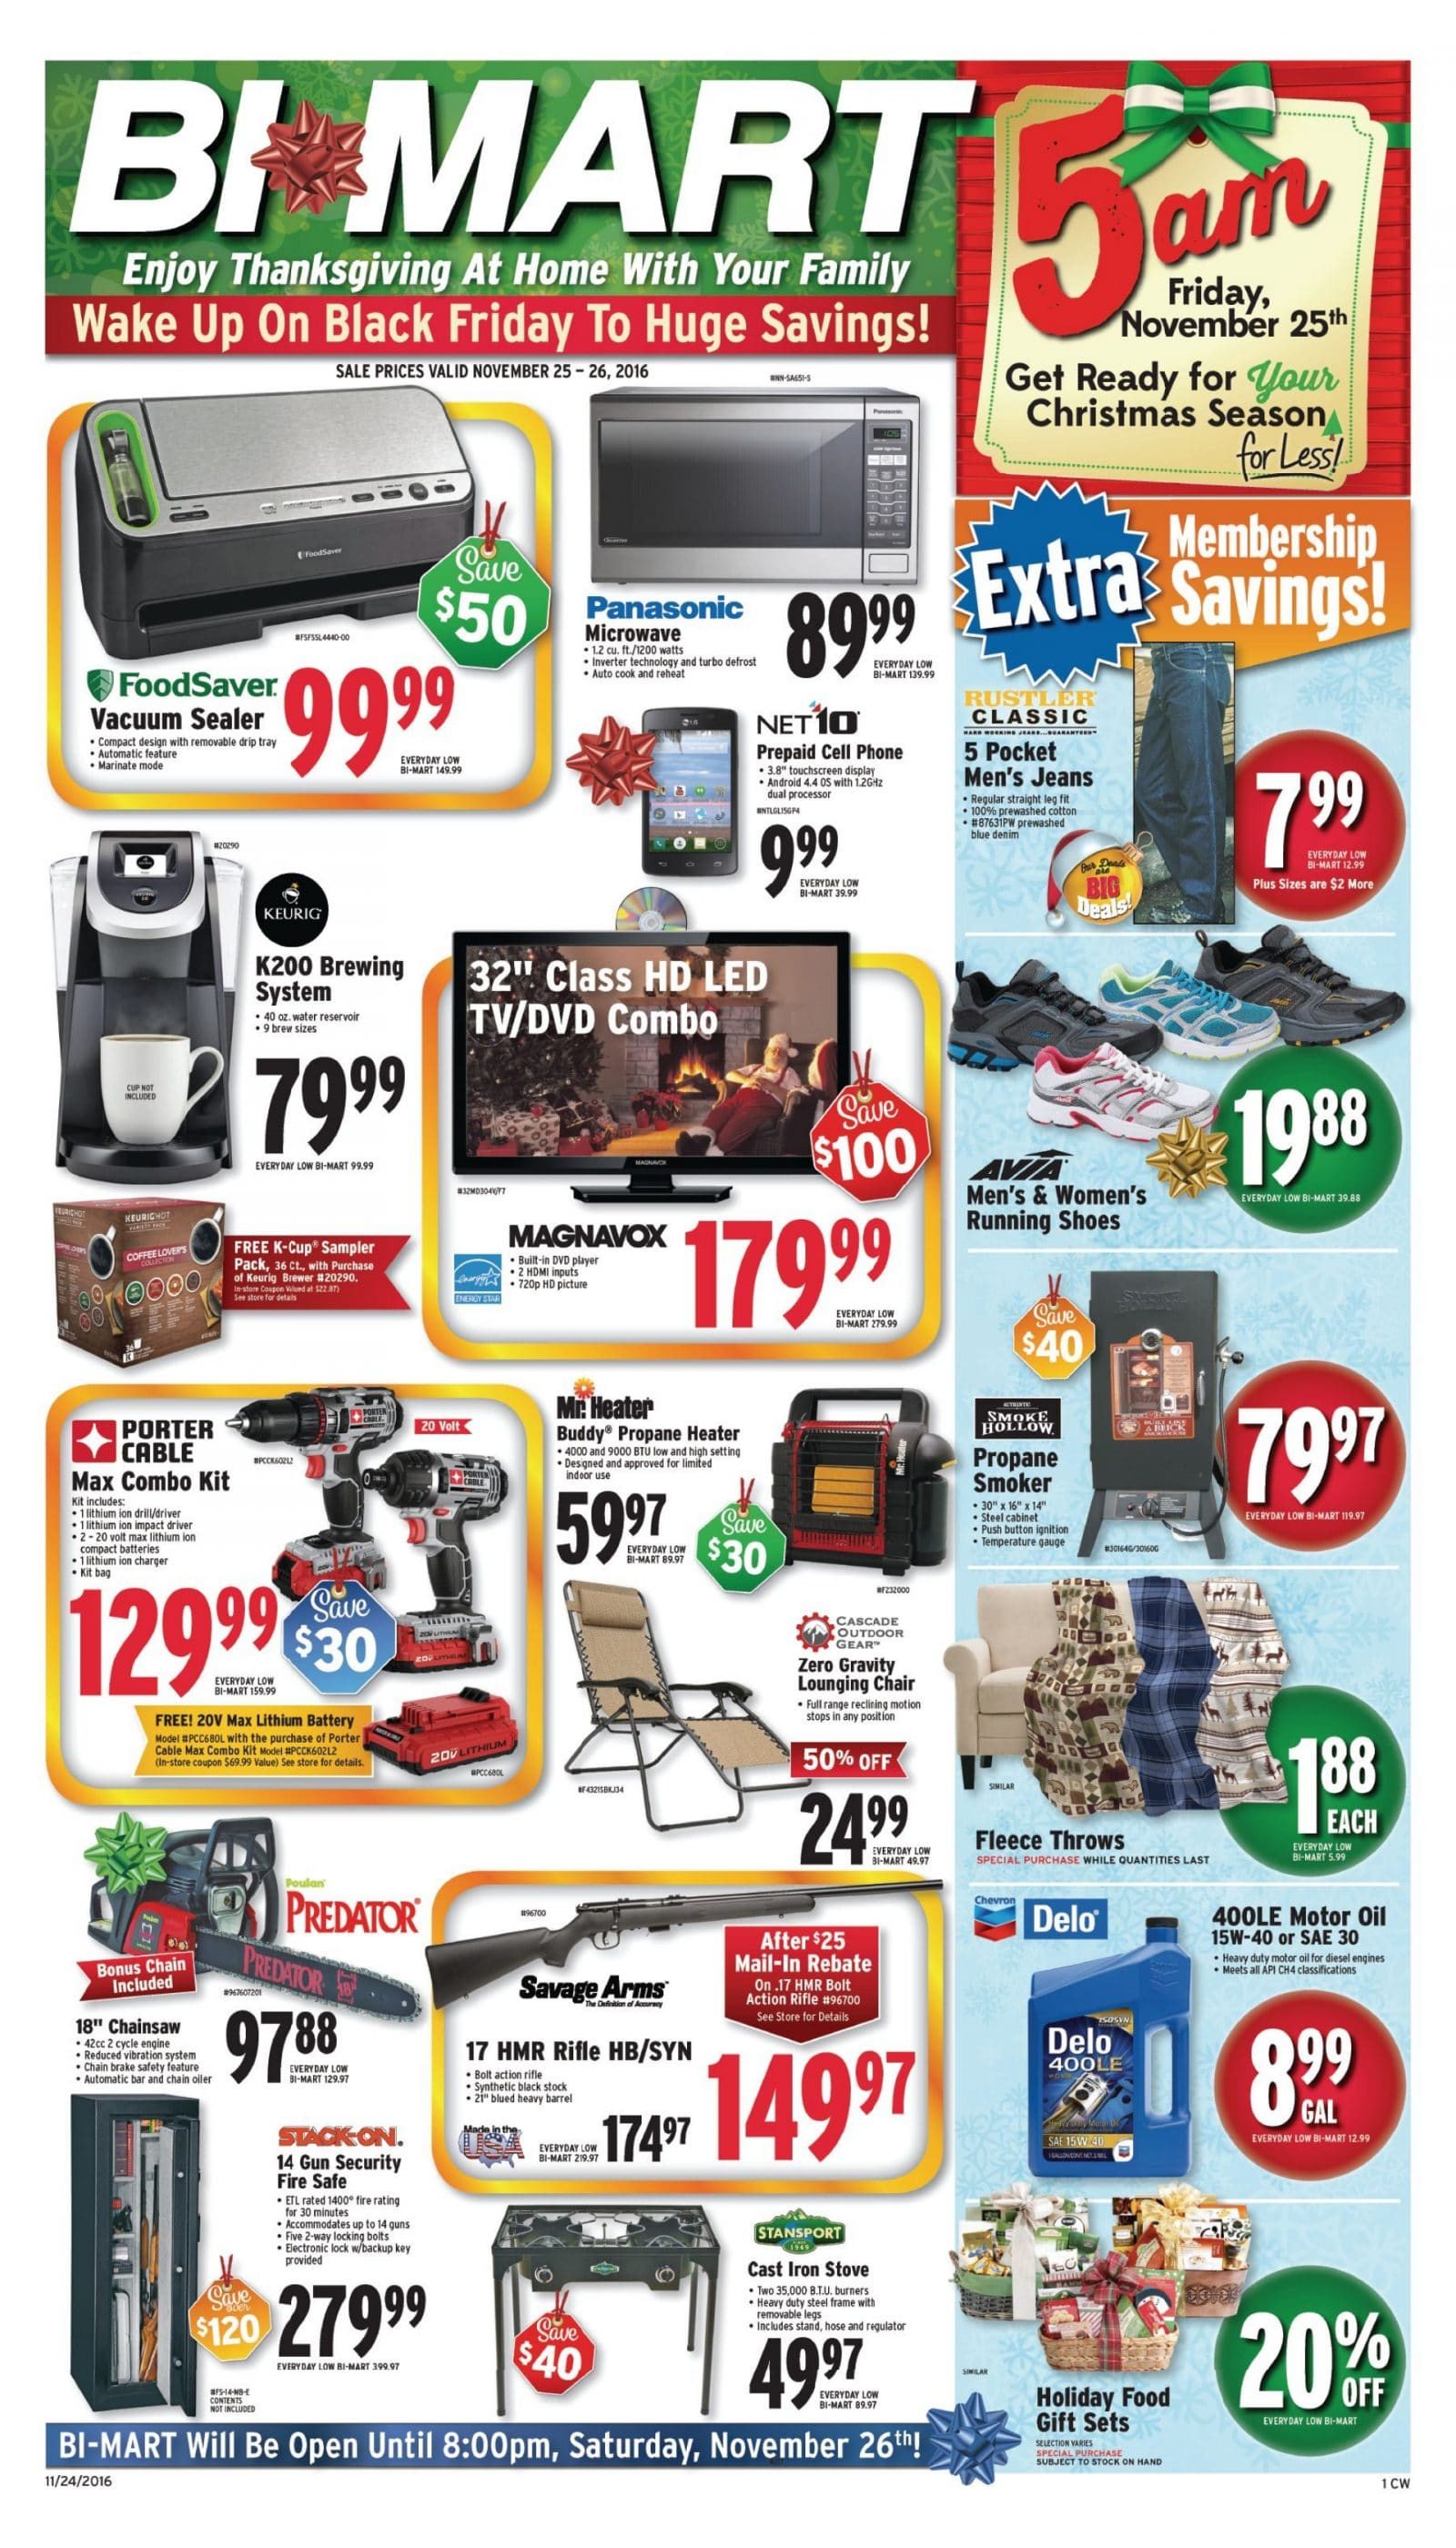 Bi Mart Black Friday Ad 2016